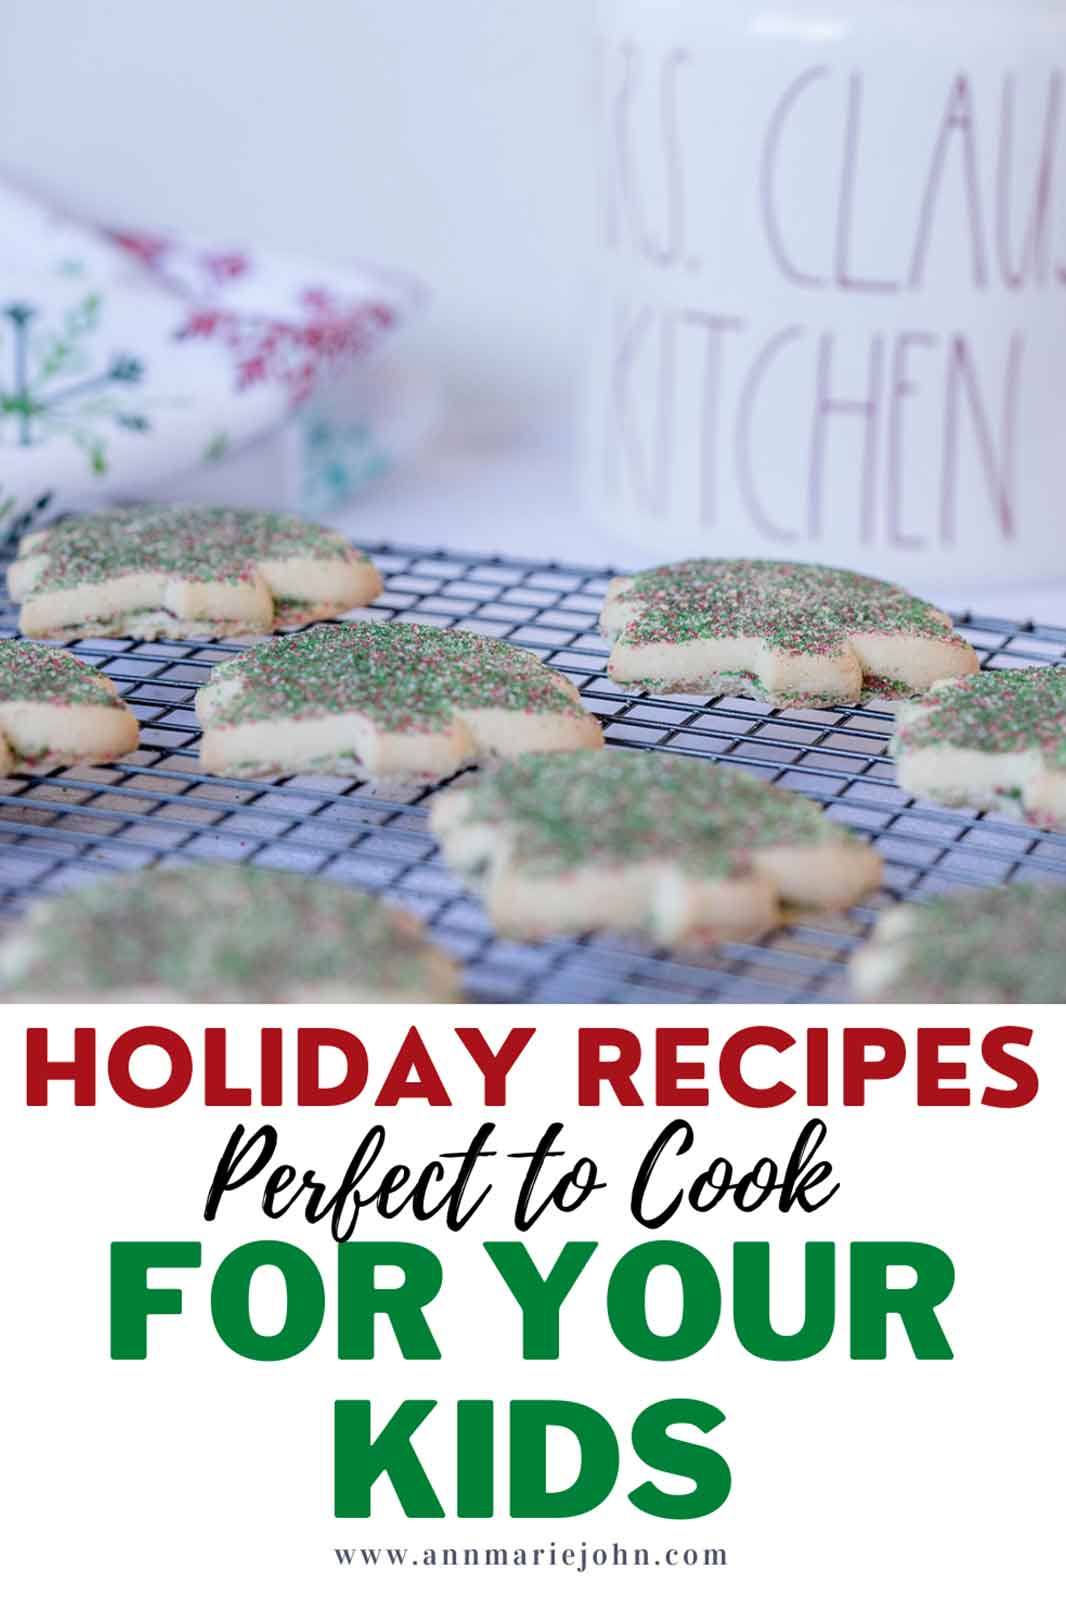 Holiday Recipes Perfect to Cook for Your Kids